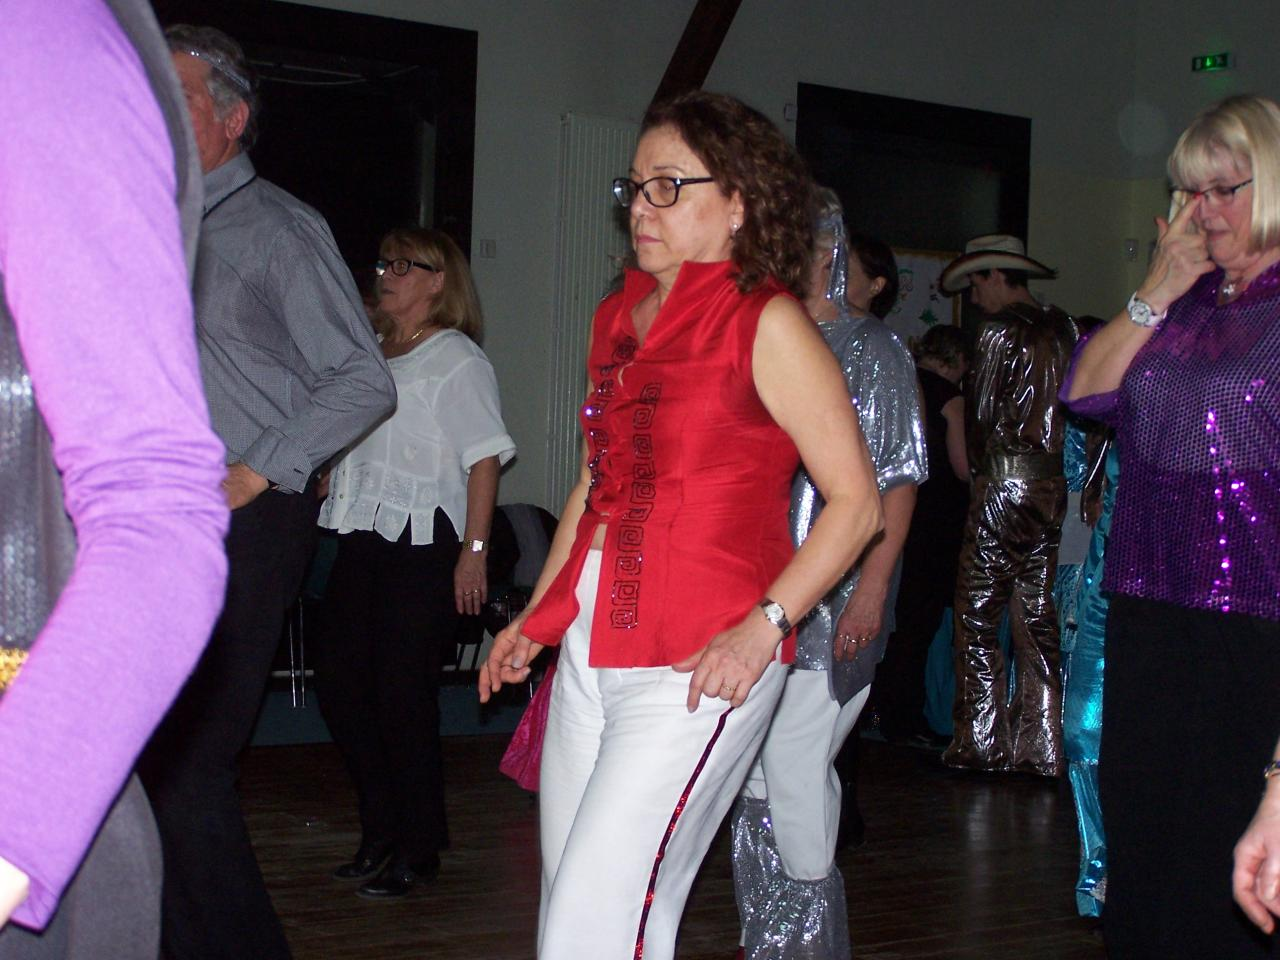 bal country 26 01 2013 032